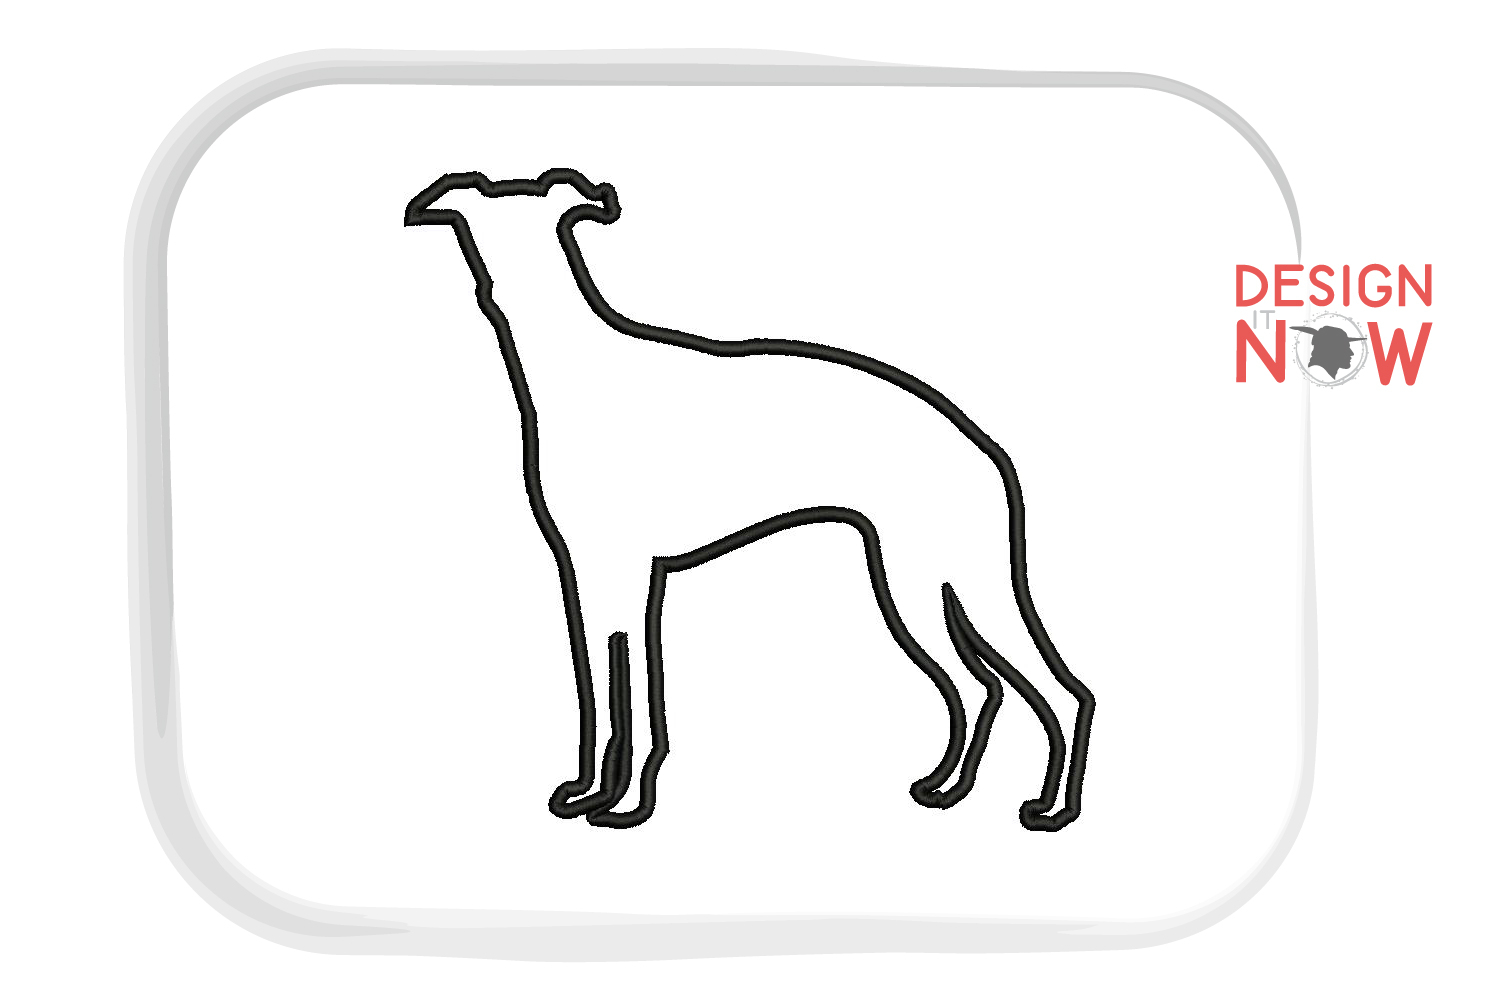 Whippet Dog Applique Design, Dog Embroidery Design example image 2